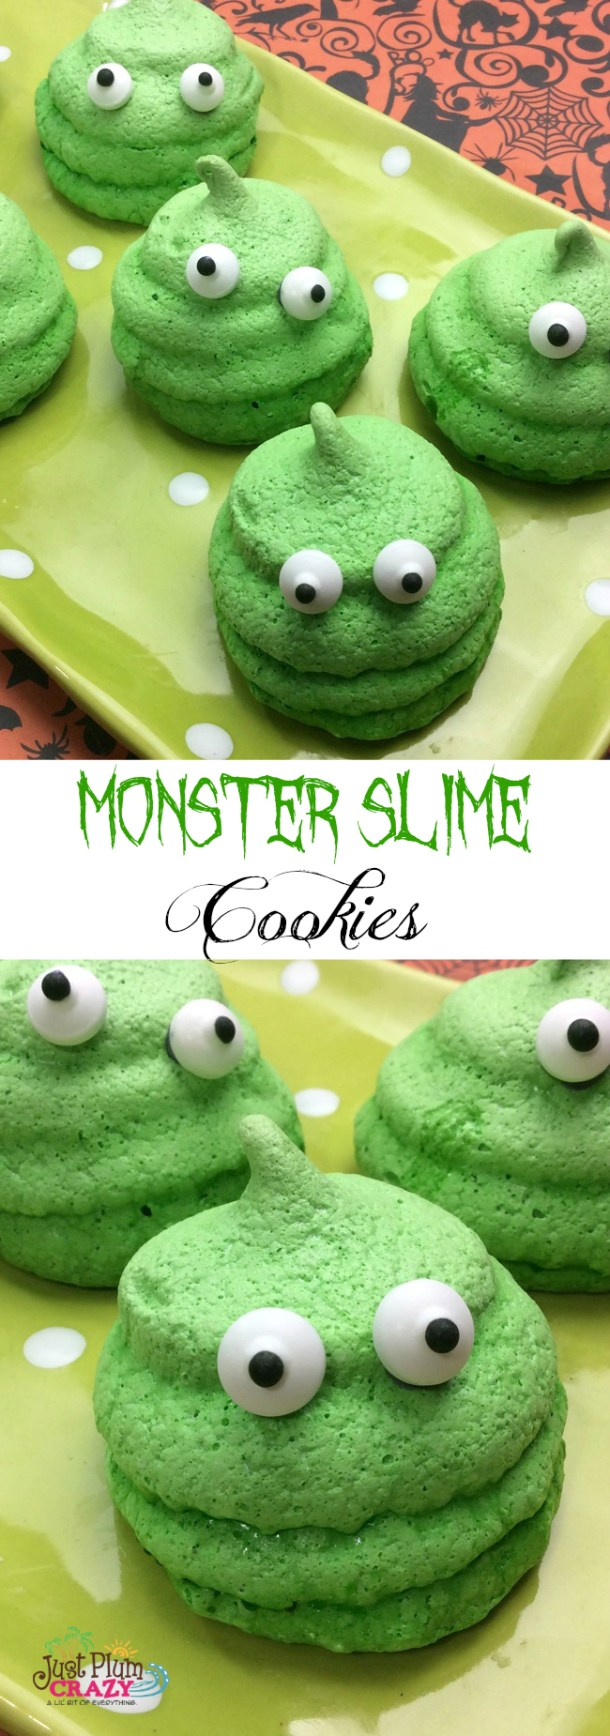 This Monster Slime Cookie recipe are just the cutest little monsters. The kids will fall in love with them. They make the perfect Halloween party treat.